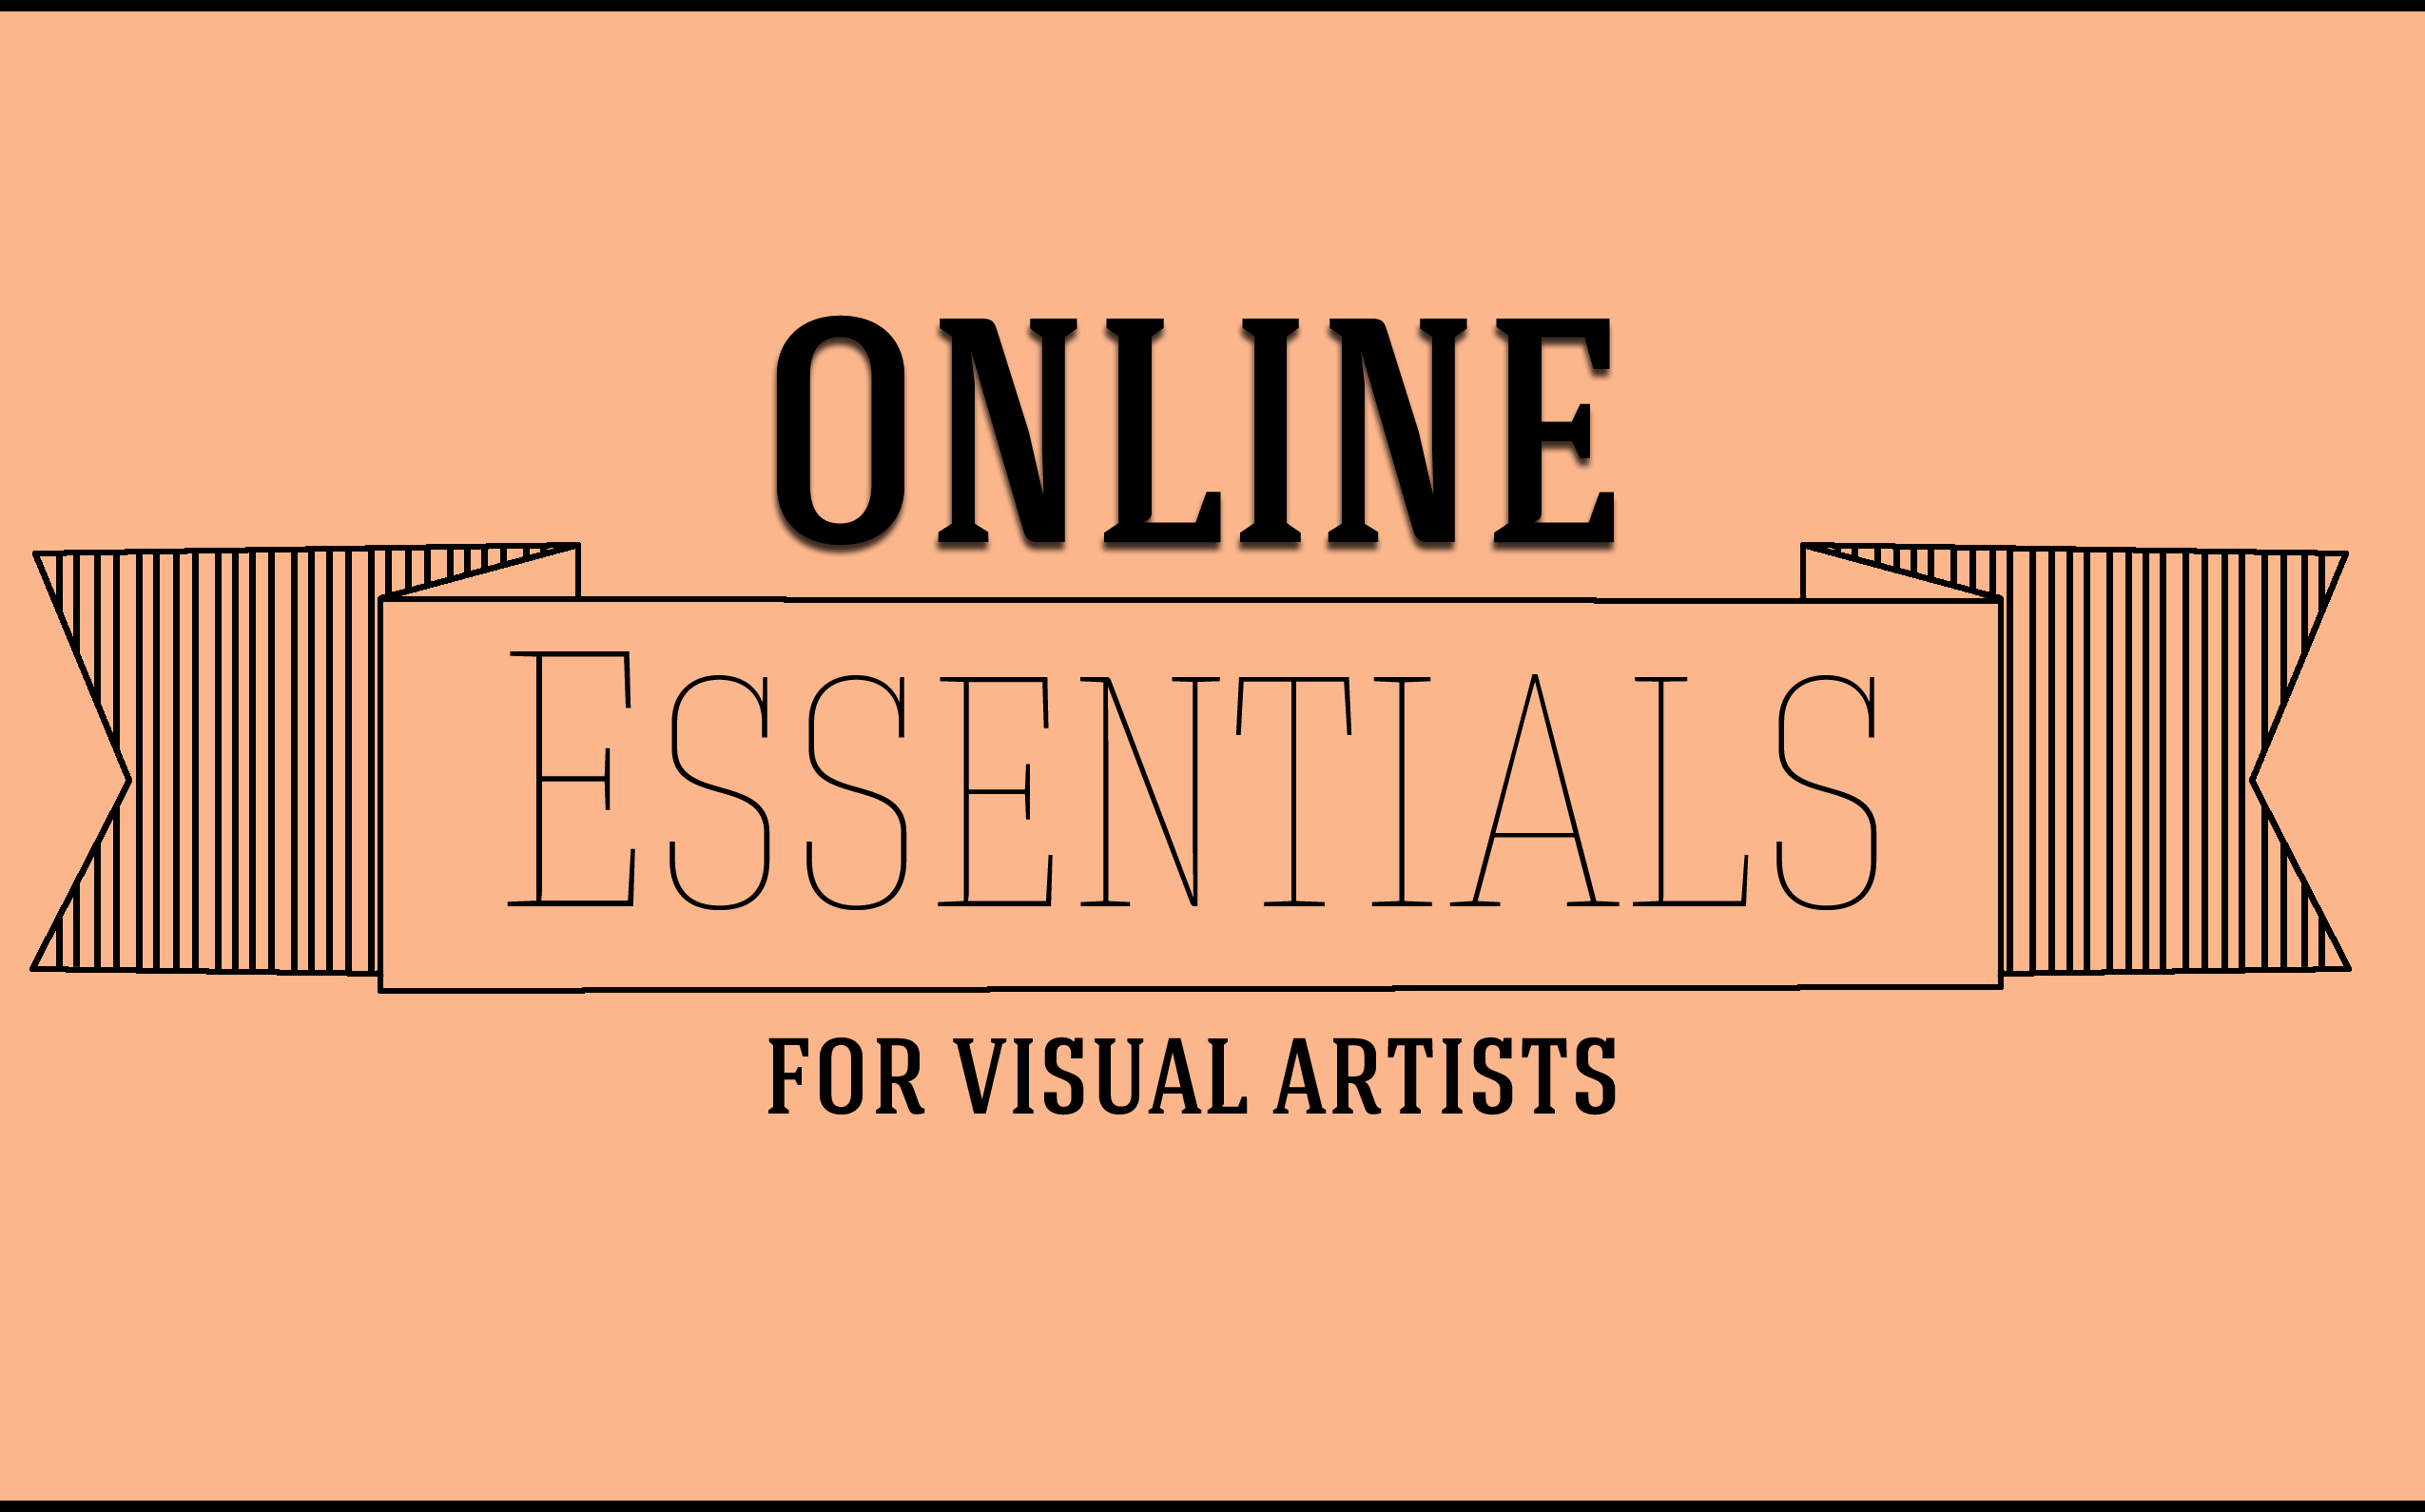 Artist Advice, Ecommerce, Tools for Artists, Portfolio Websites, Social Media, Networking, Visual Artists